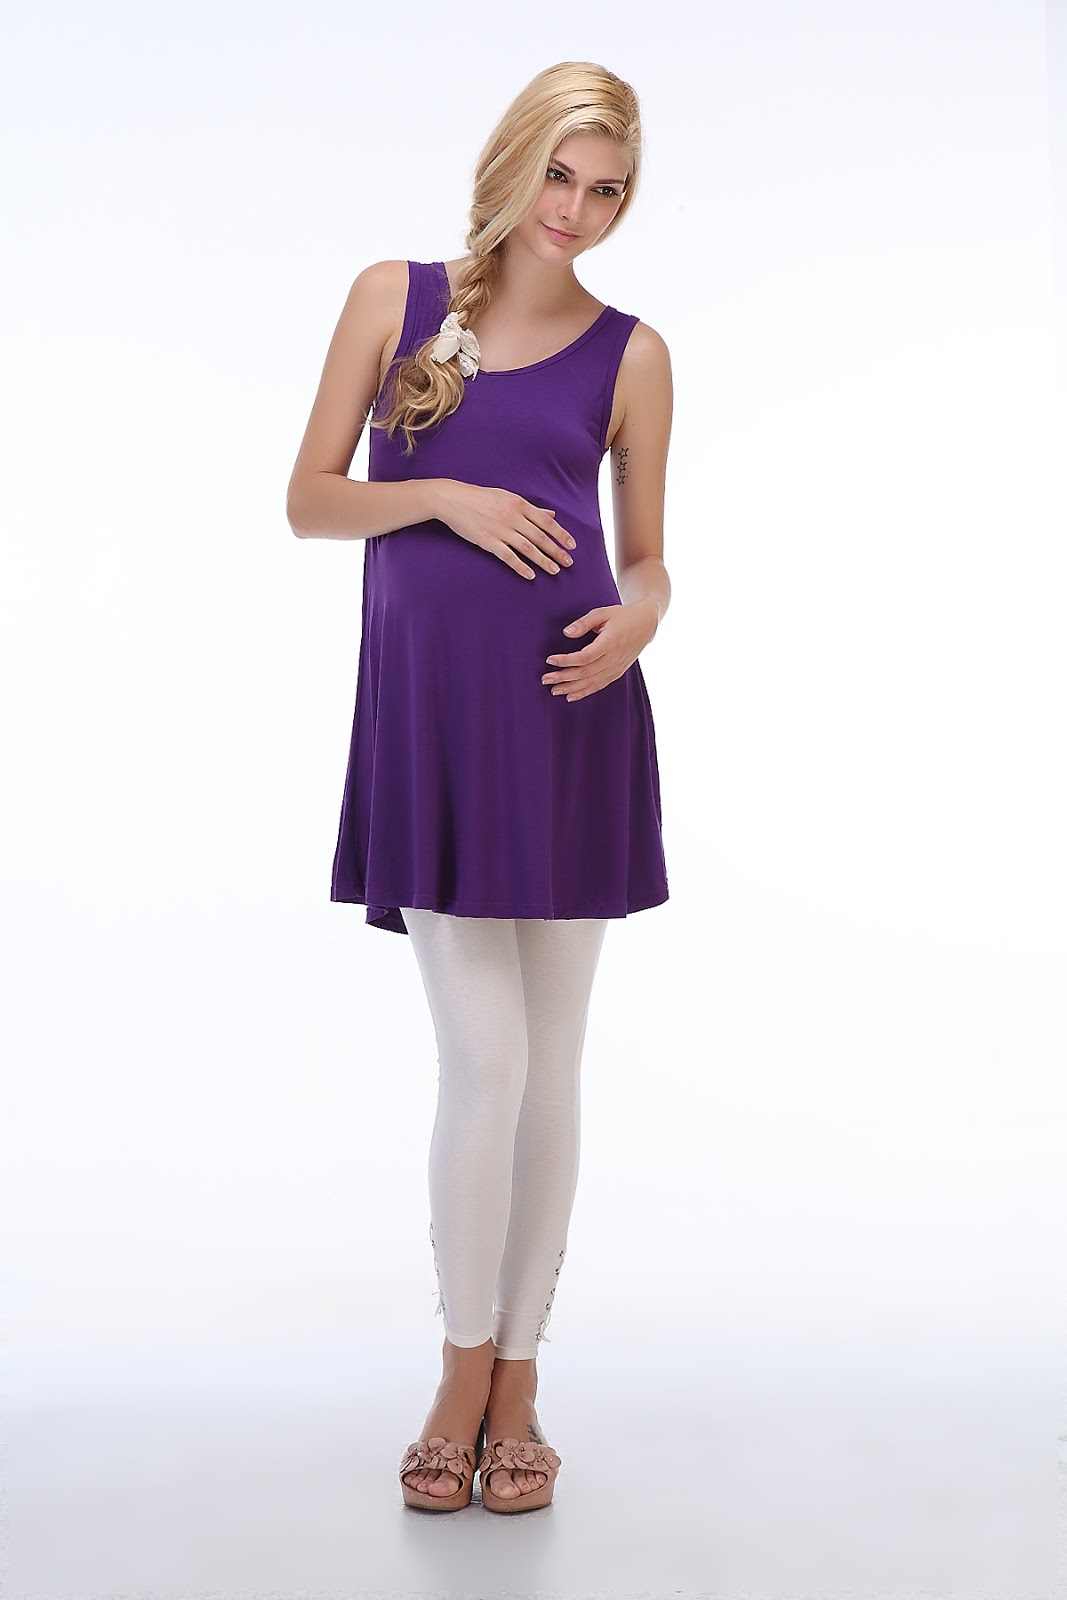 Maternity dresses and maternity clothes online store maternity dresses and maternity clothes online storematernityloves ombrellifo Choice Image